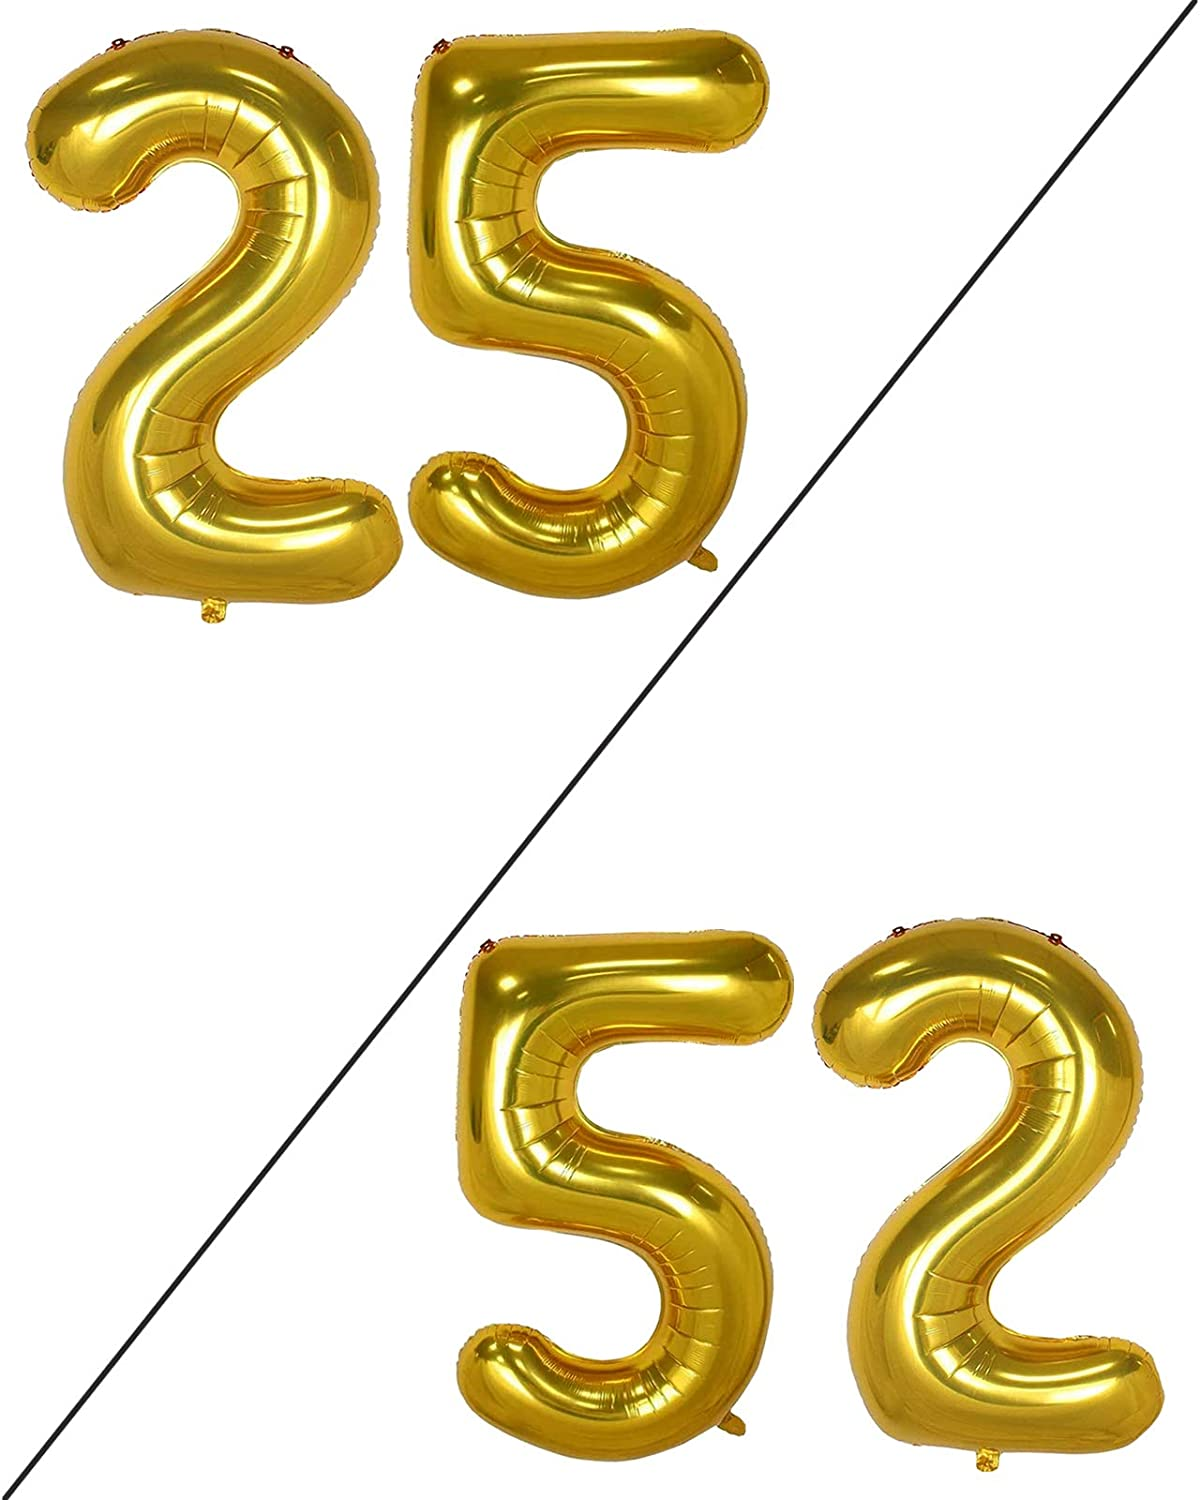 AULE 40 Inch Large 25 Number Balloons Gold, Big Foil Number Balloons, Giant Helium Happy 25th Birthday Party Decorations for Man and Women, Huge Mylar Anniversary Party Supplies